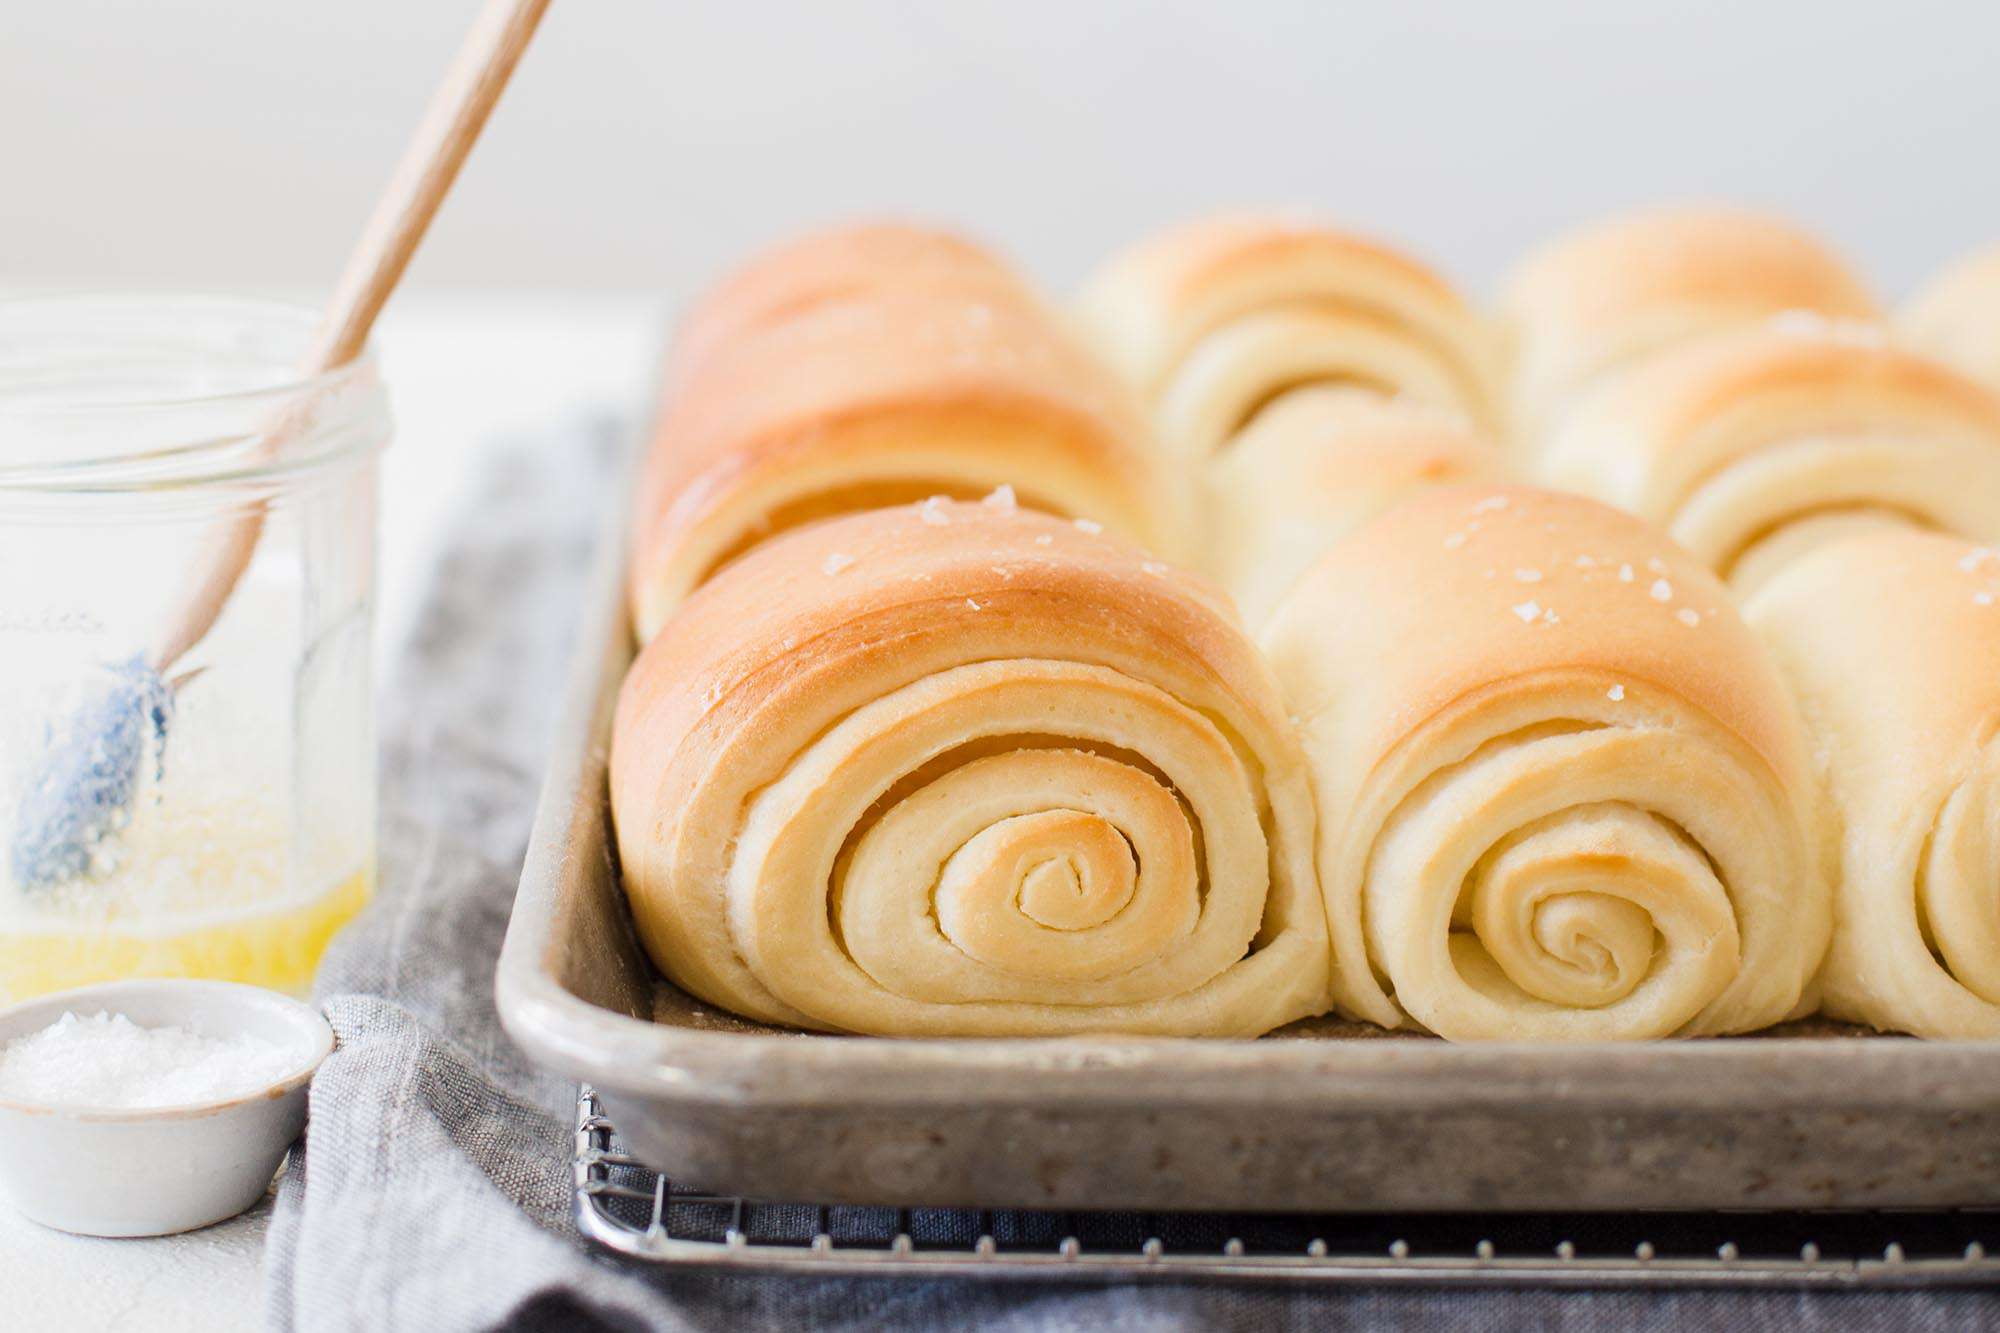 Utah's famous lion house rolls on a baking sheet with a jar of melted butter to the left.